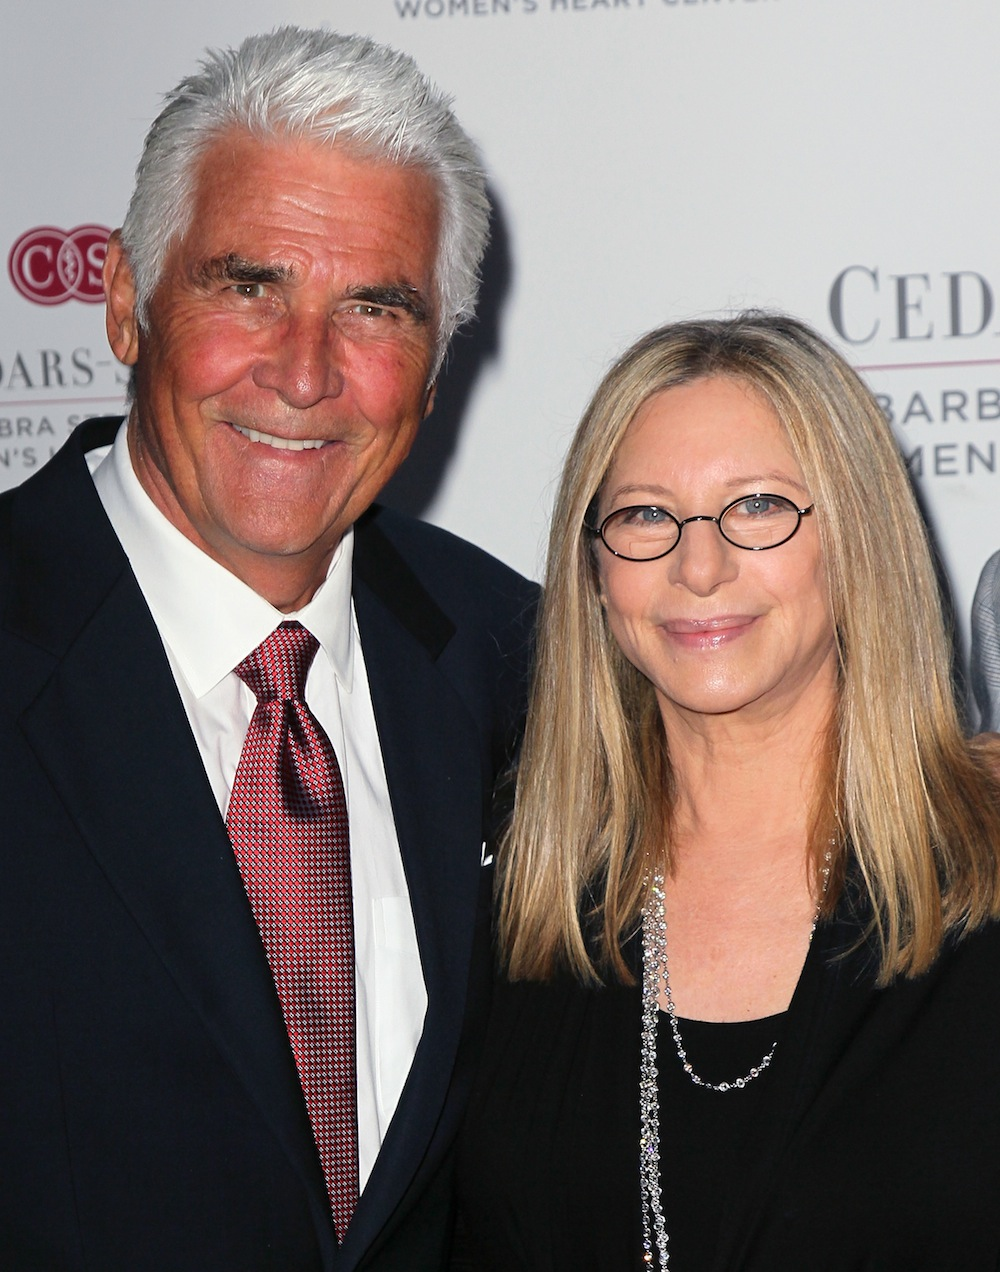 Barbra Streisand Hosts Intimate Dinner Benefiting Cedars-Sinai Women's Heart Center